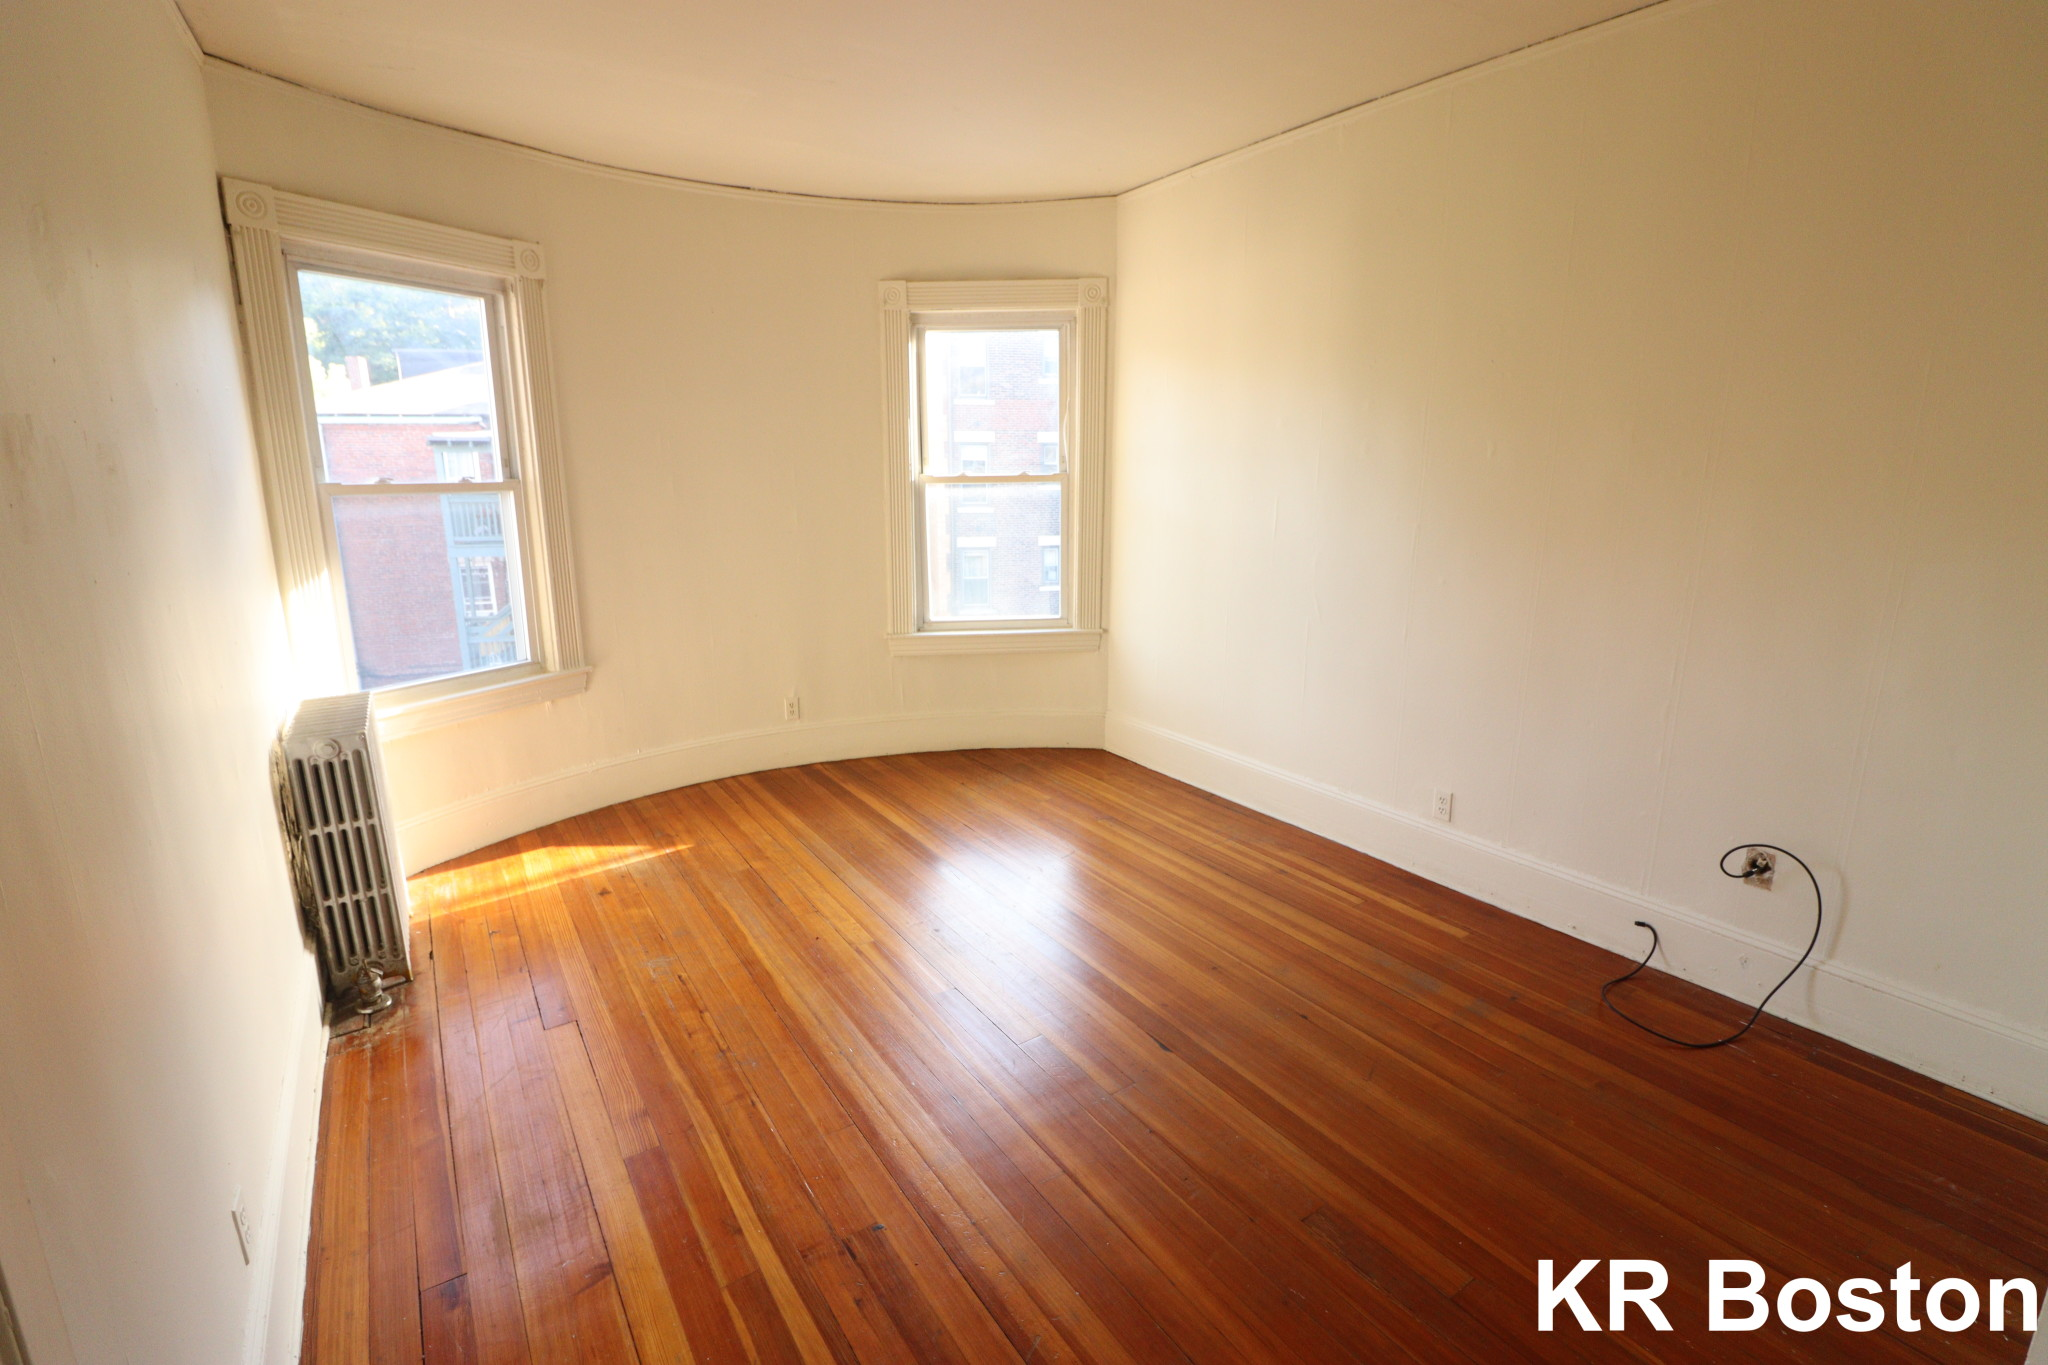 2.8 Beds, 1 Bath apartment in Brookline for $2,150